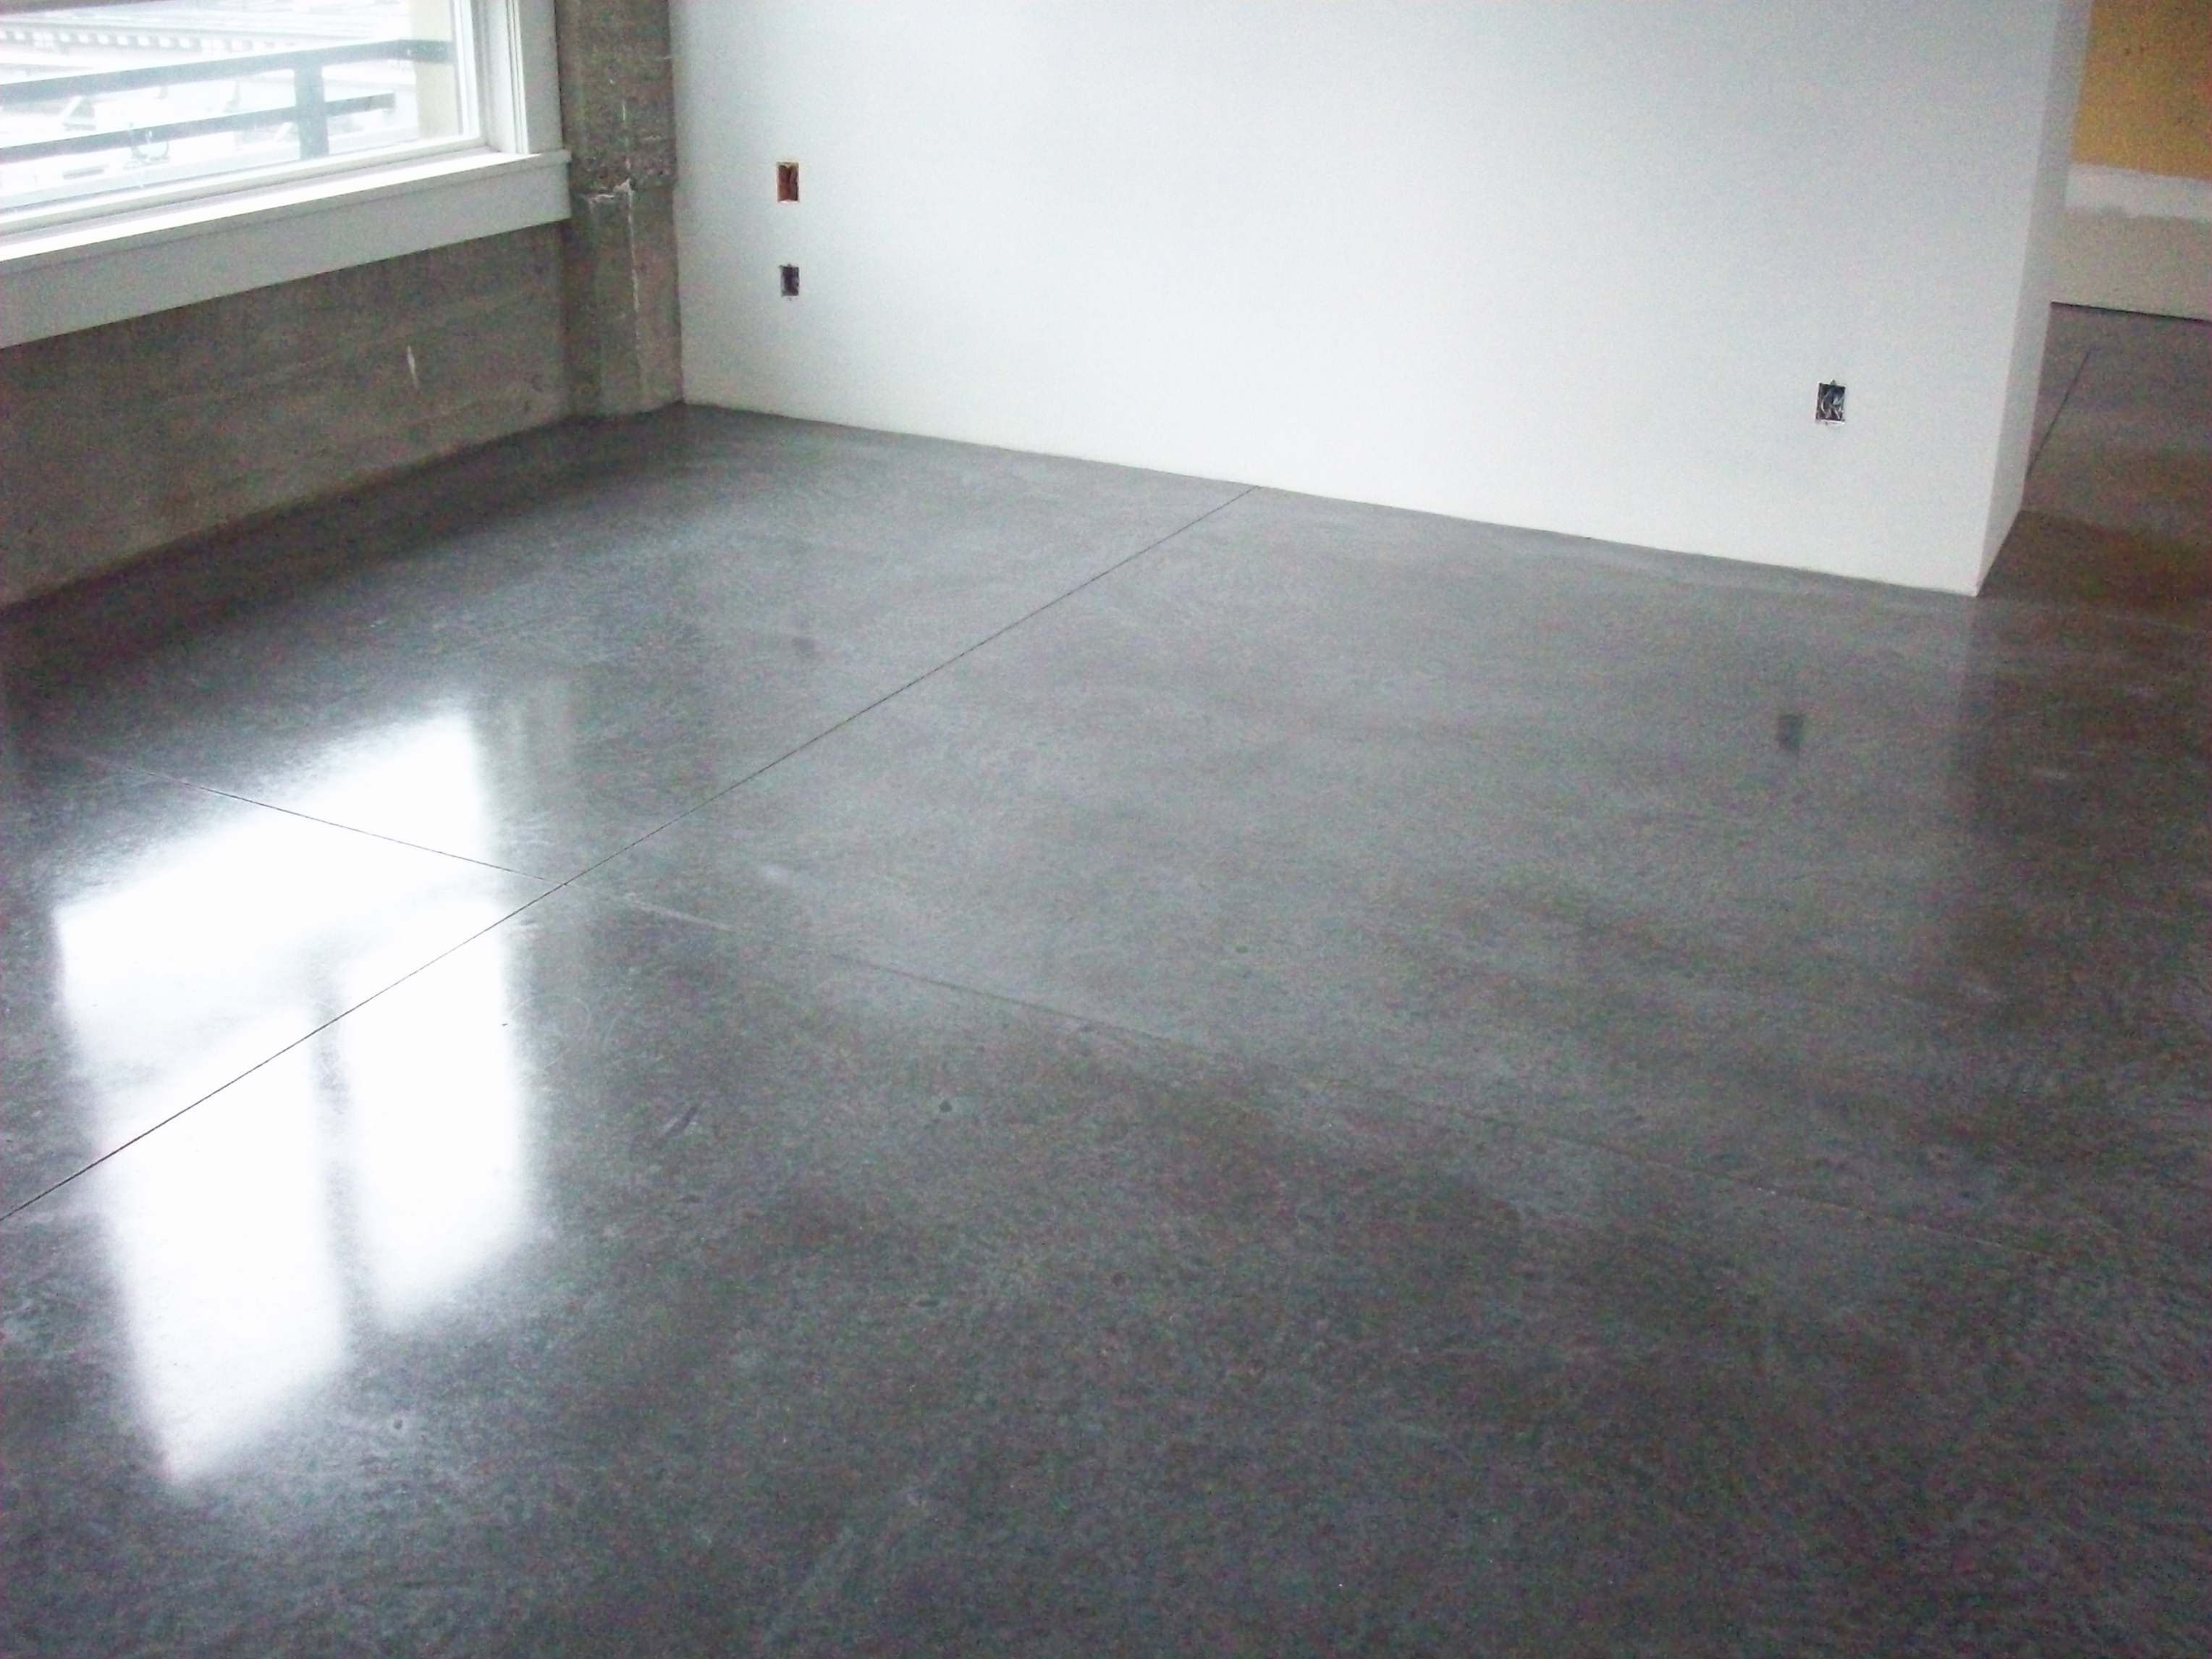 Concrete Floors Diamond Buffing Is An Economical Option